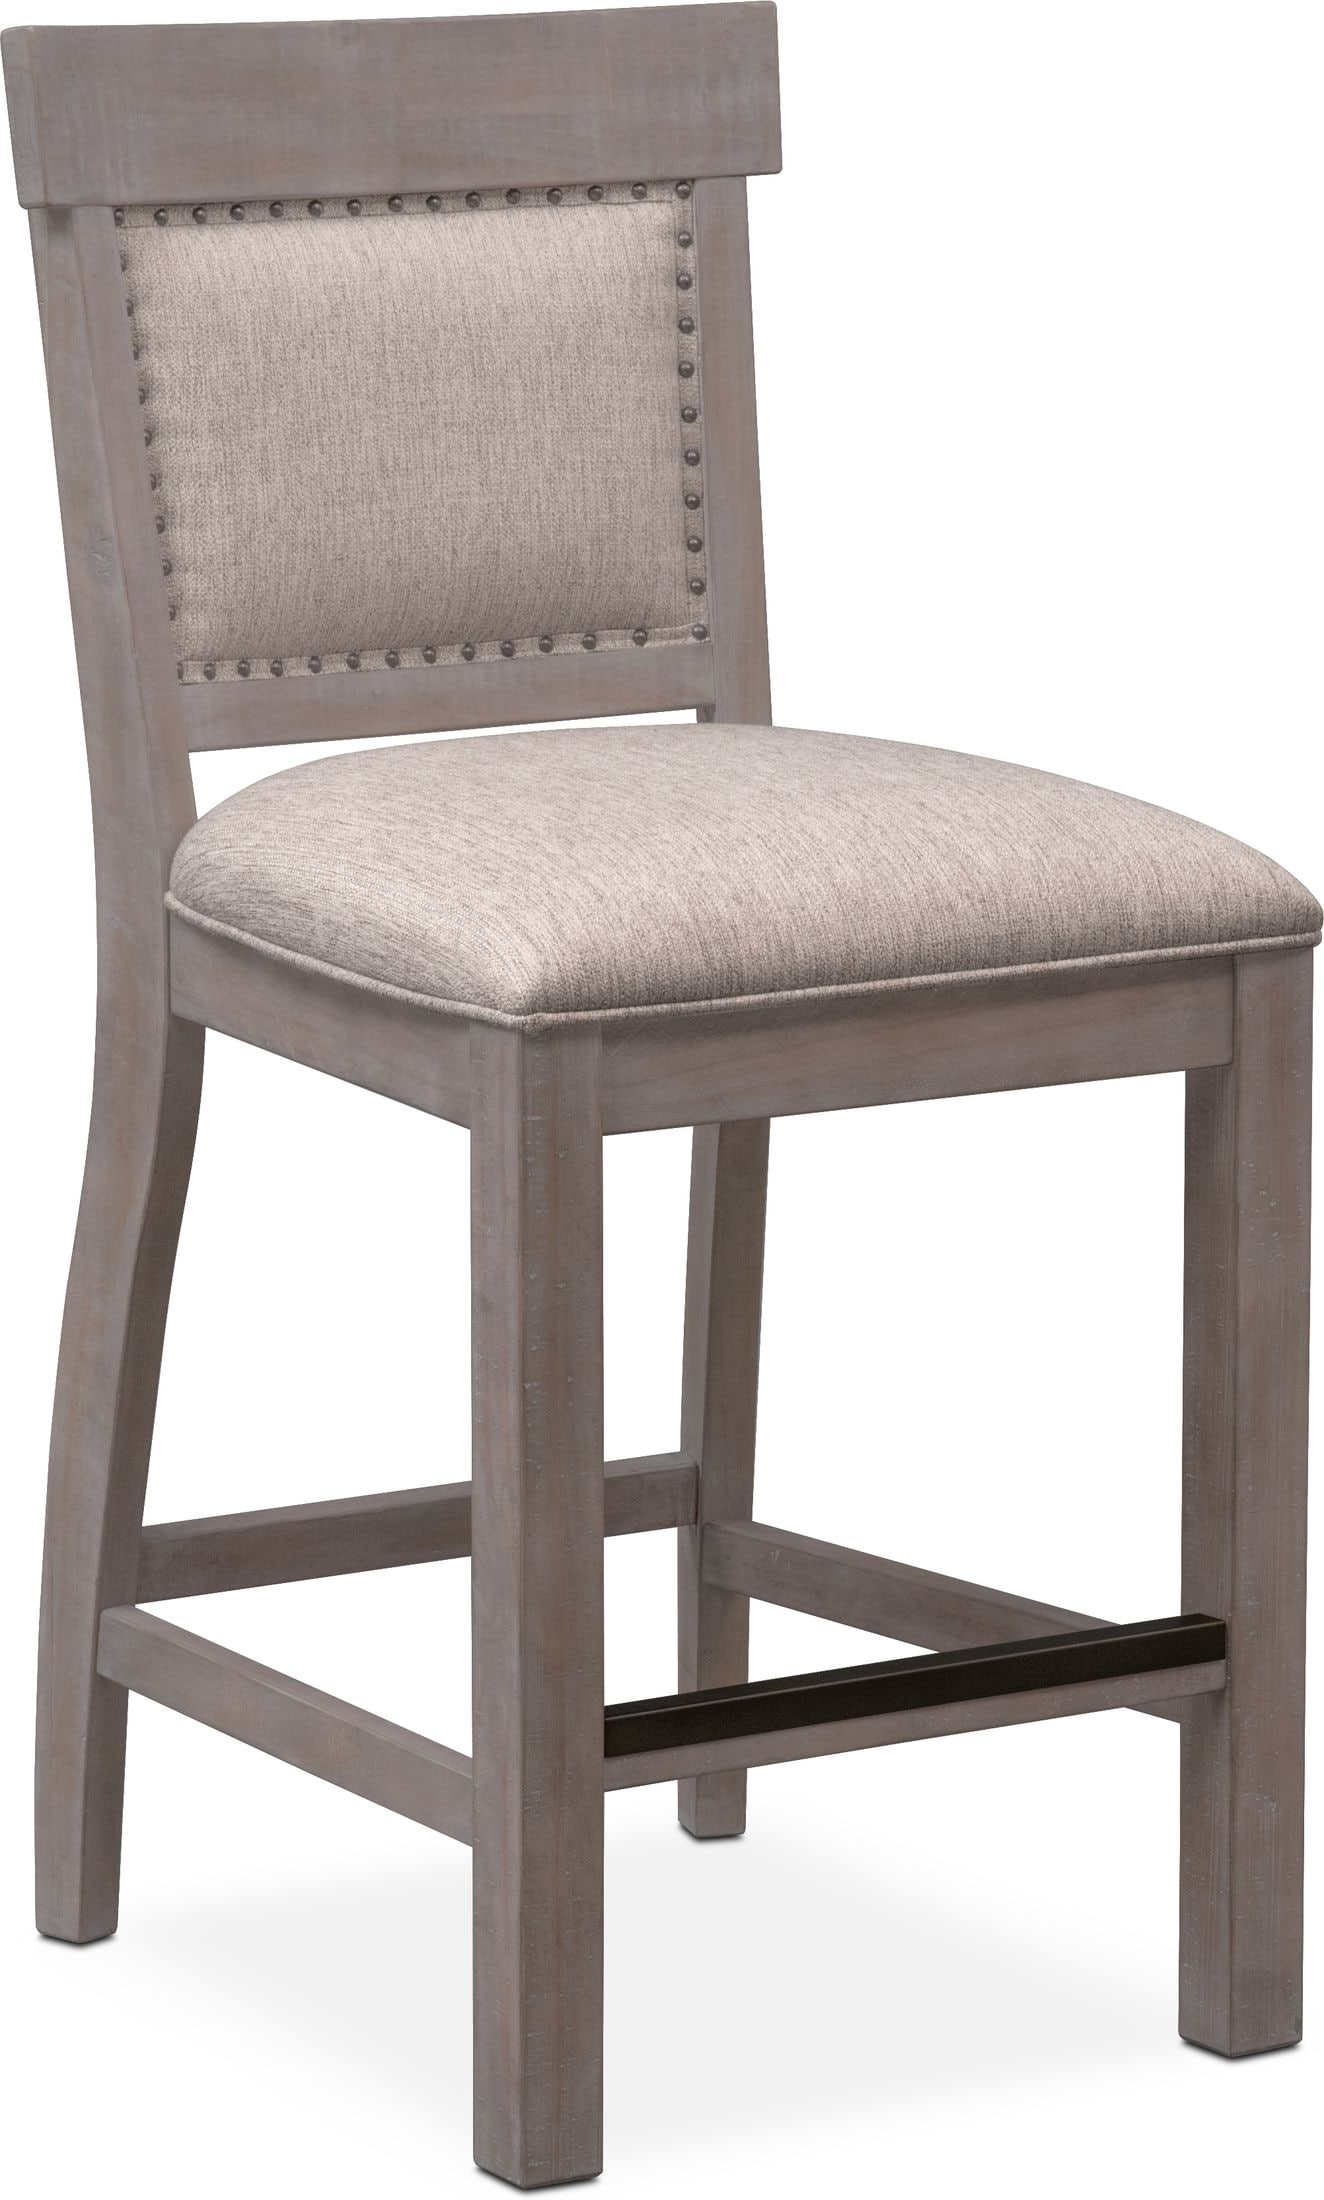 Dining Room Furniture - Charthouse Counter-Height Upholstered Stool